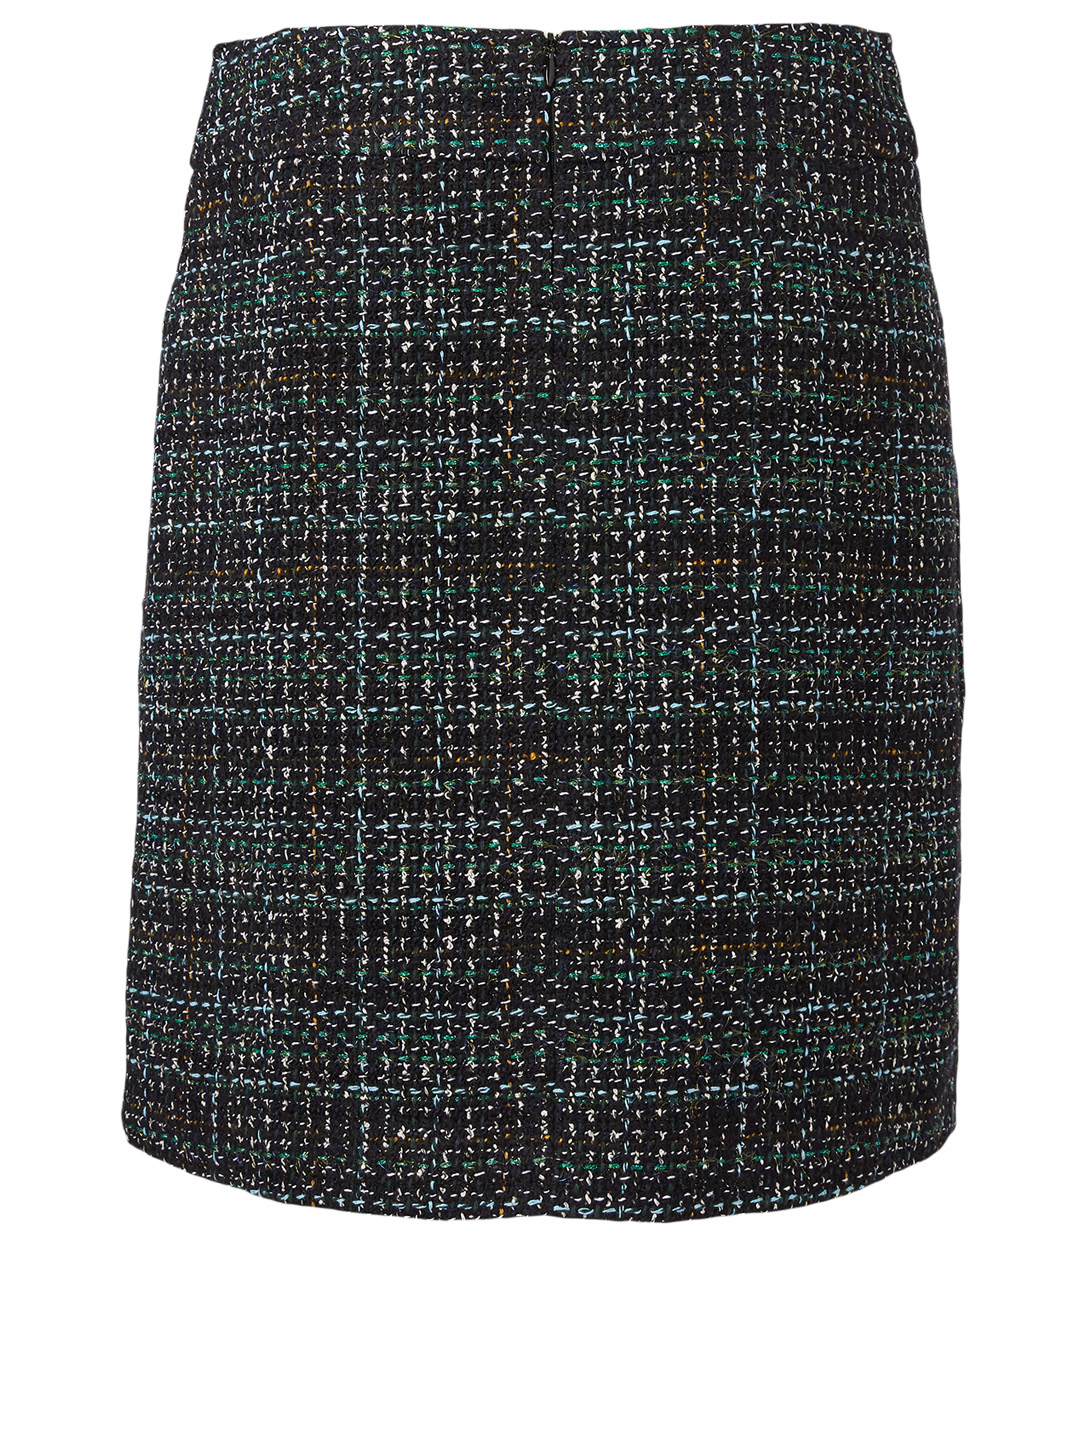 AKRIS PUNTO Tweed Skirt Women's Black